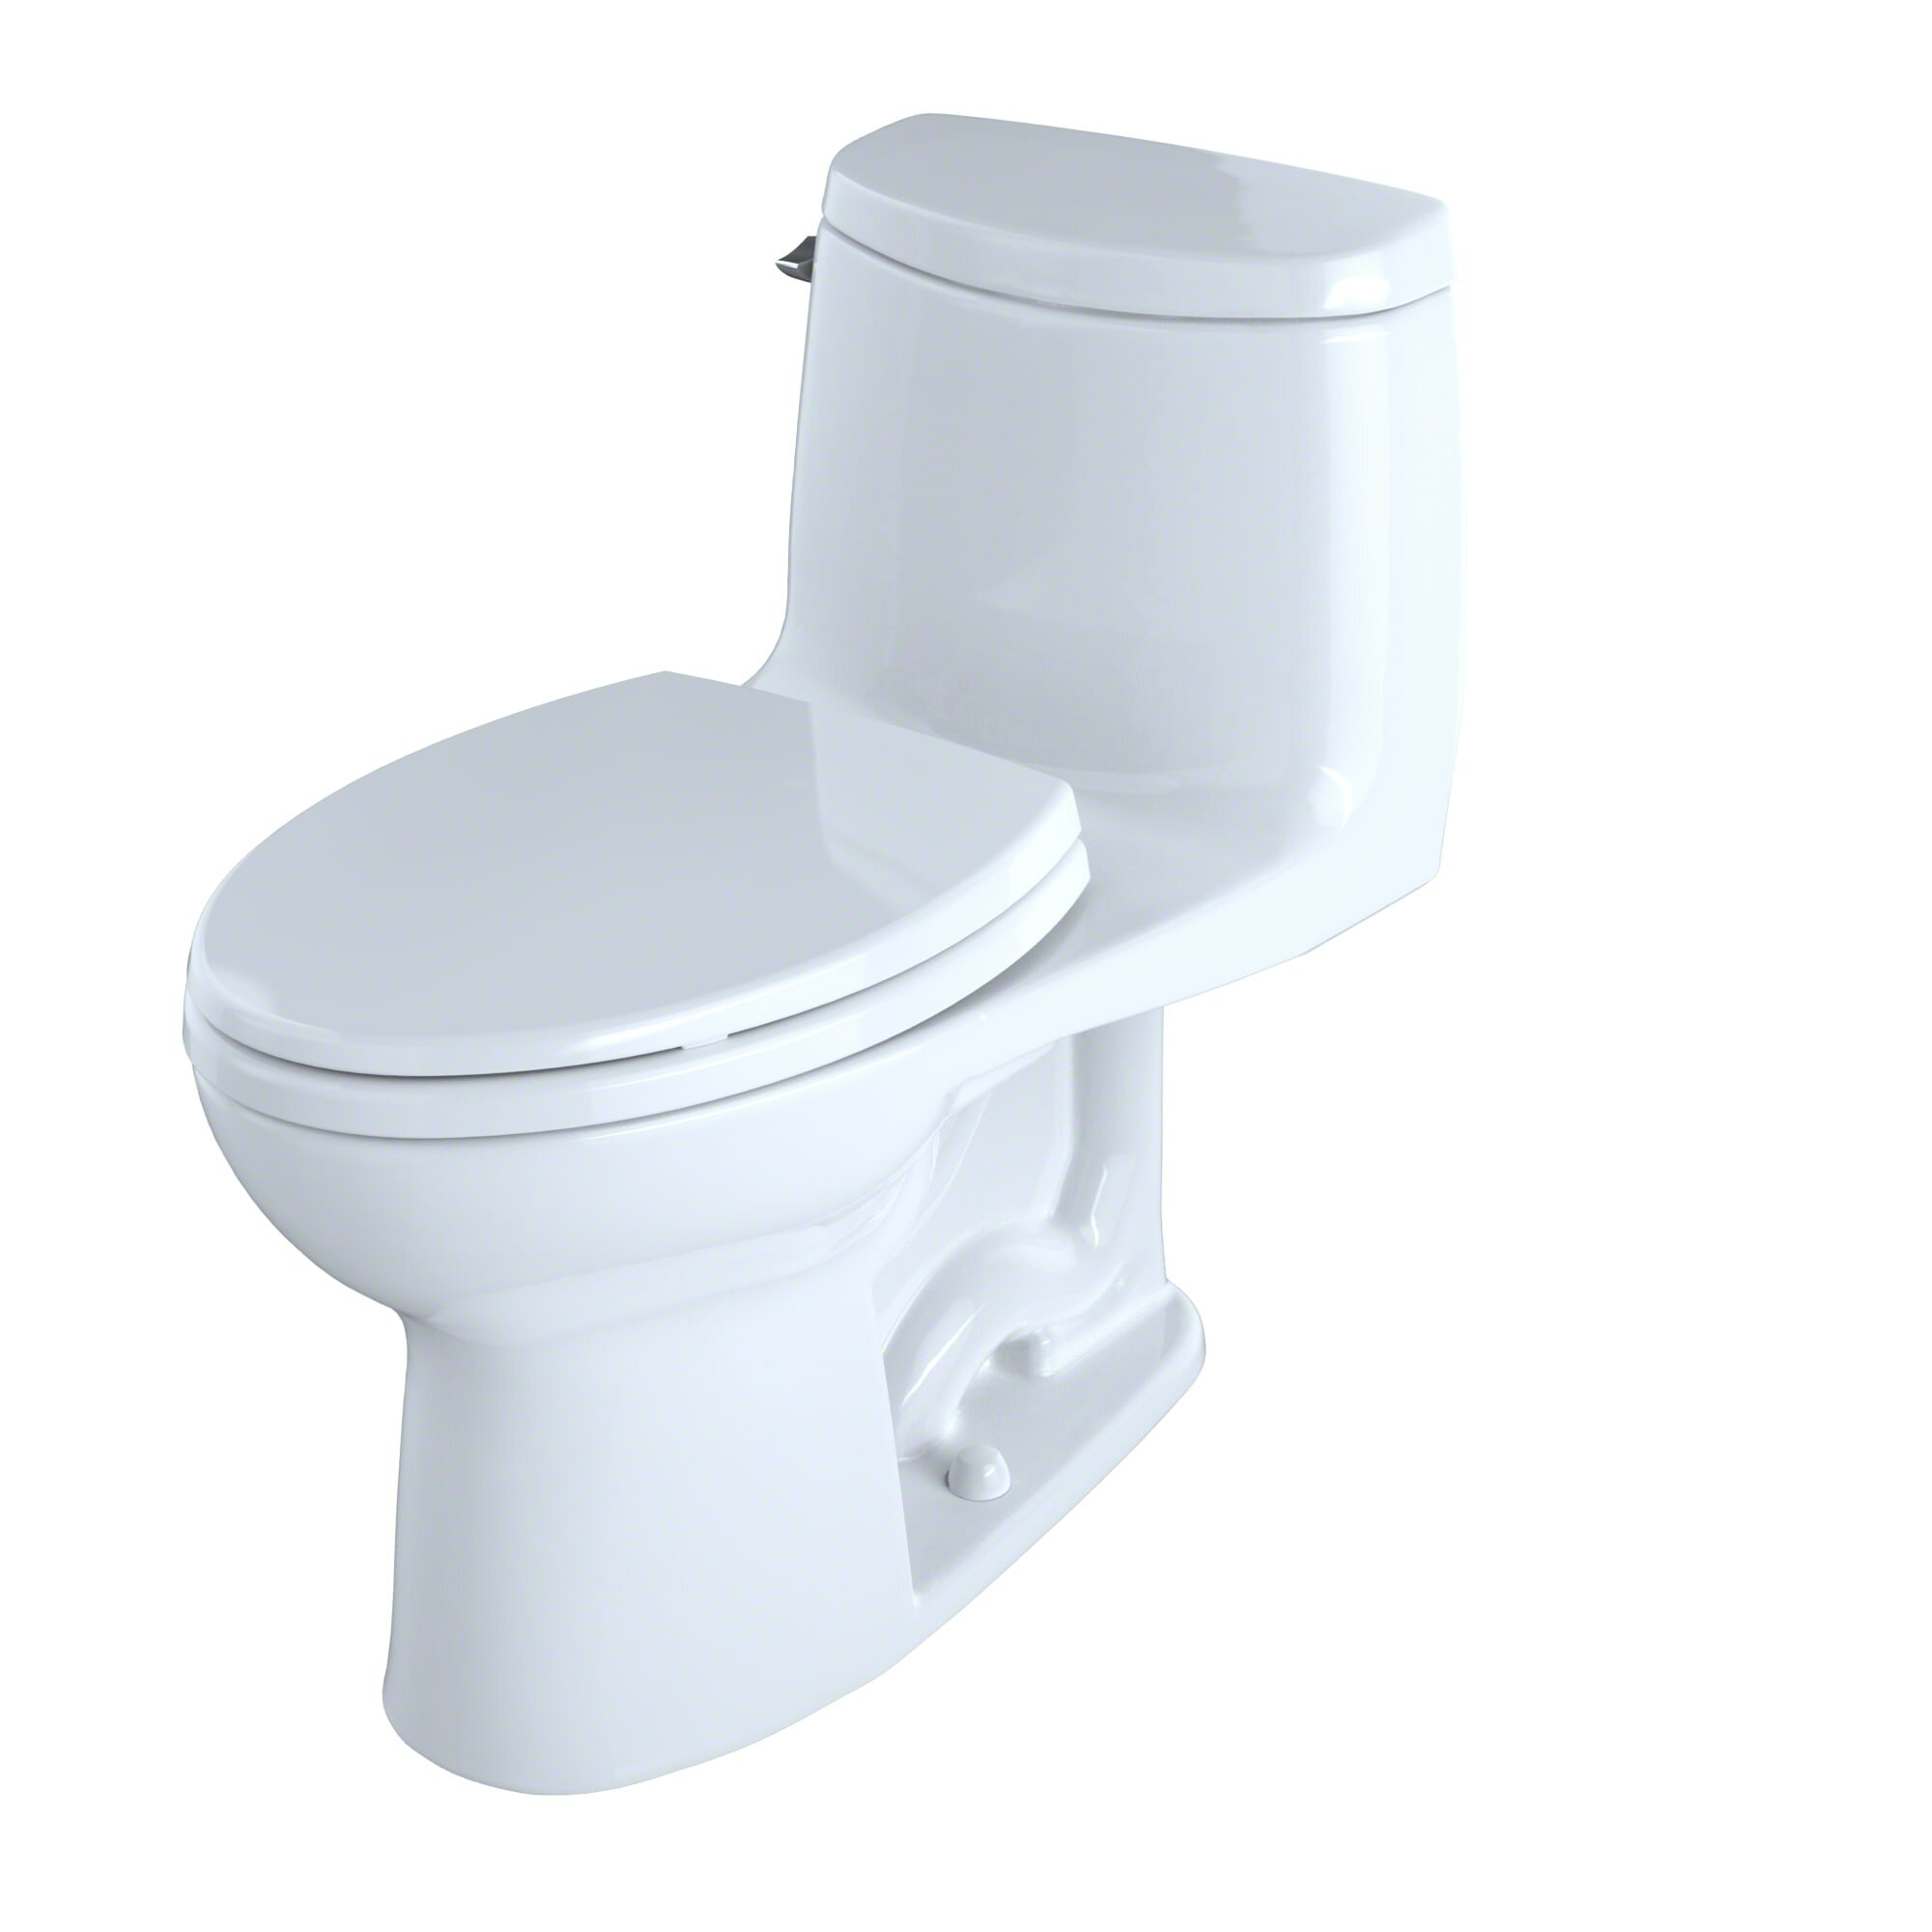 Toto Ultramax II 1.28 GPF Elongated One-Piece Toilet & Reviews ...